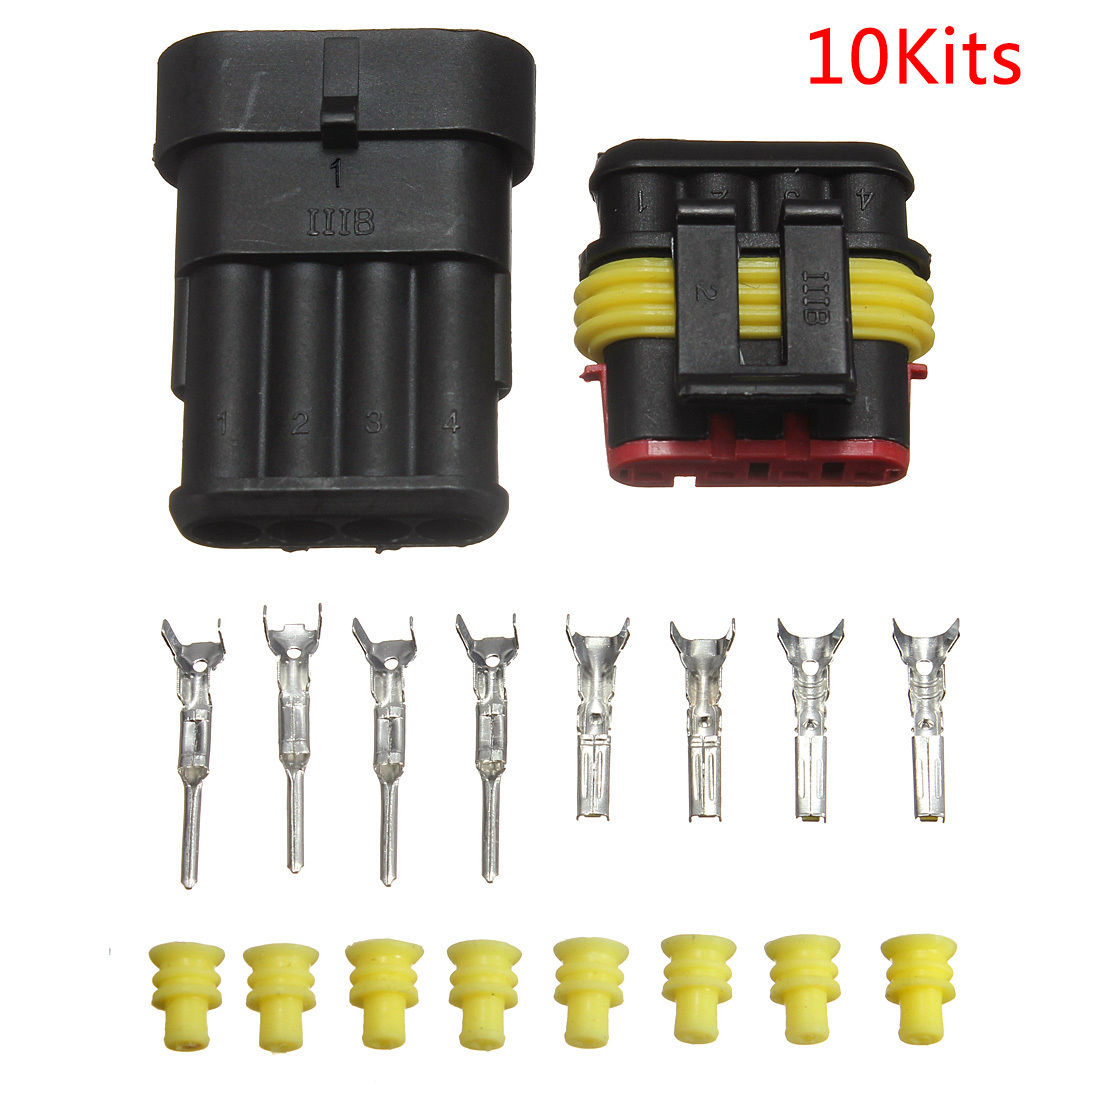 10 Kits Car Auto 4 Pin Way Sealed Waterproof Electrical Wire Connector Plug Sets black 50 sets 4 pin dj3041y 1 6 11 21 deutsch connectors dt04 4p dt06 4s automobile waterproof wire electrical connector plug